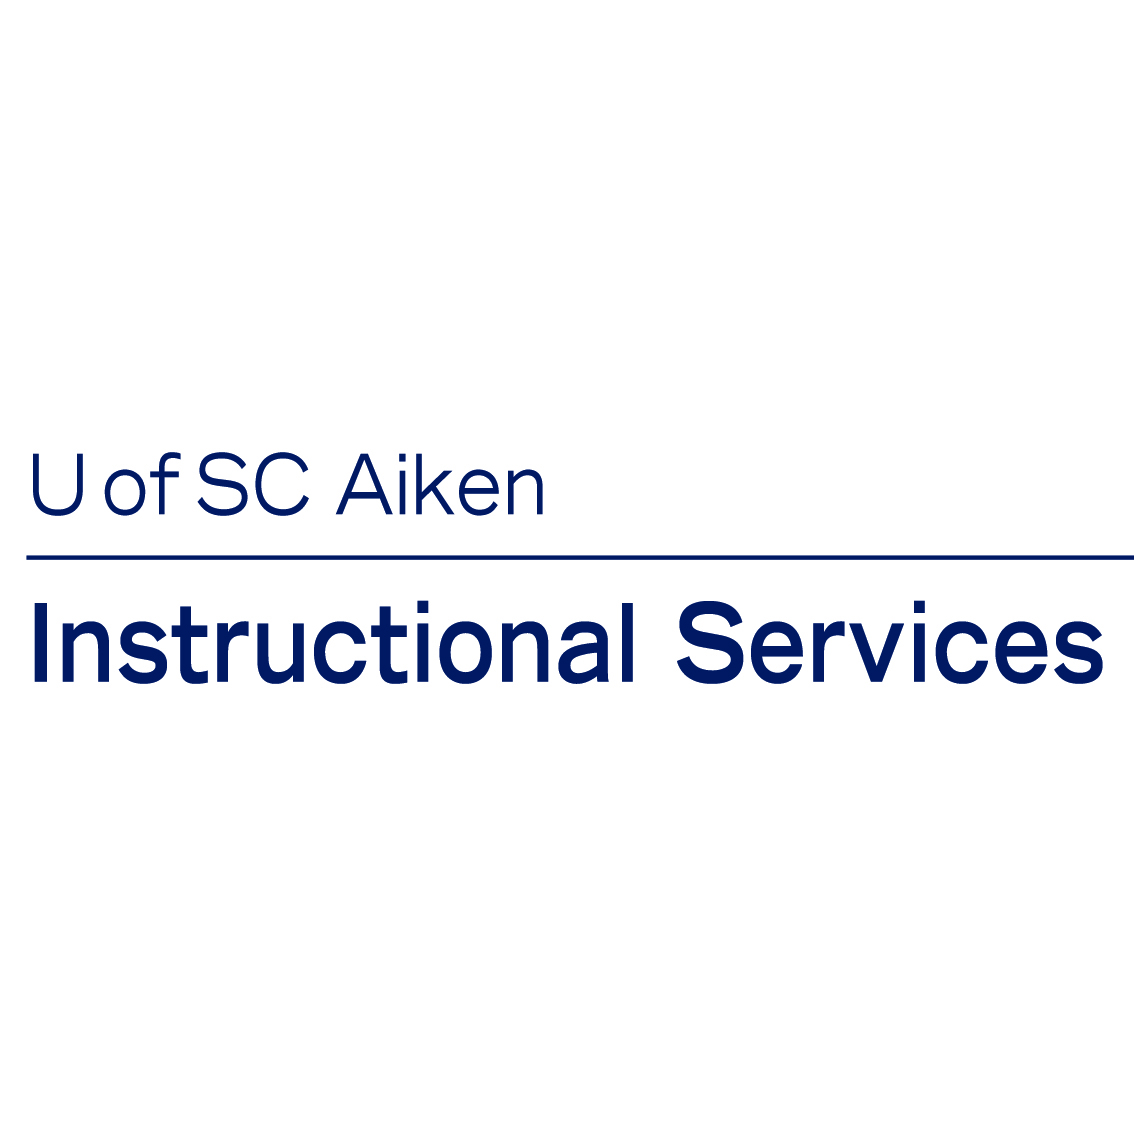 Instructional Services